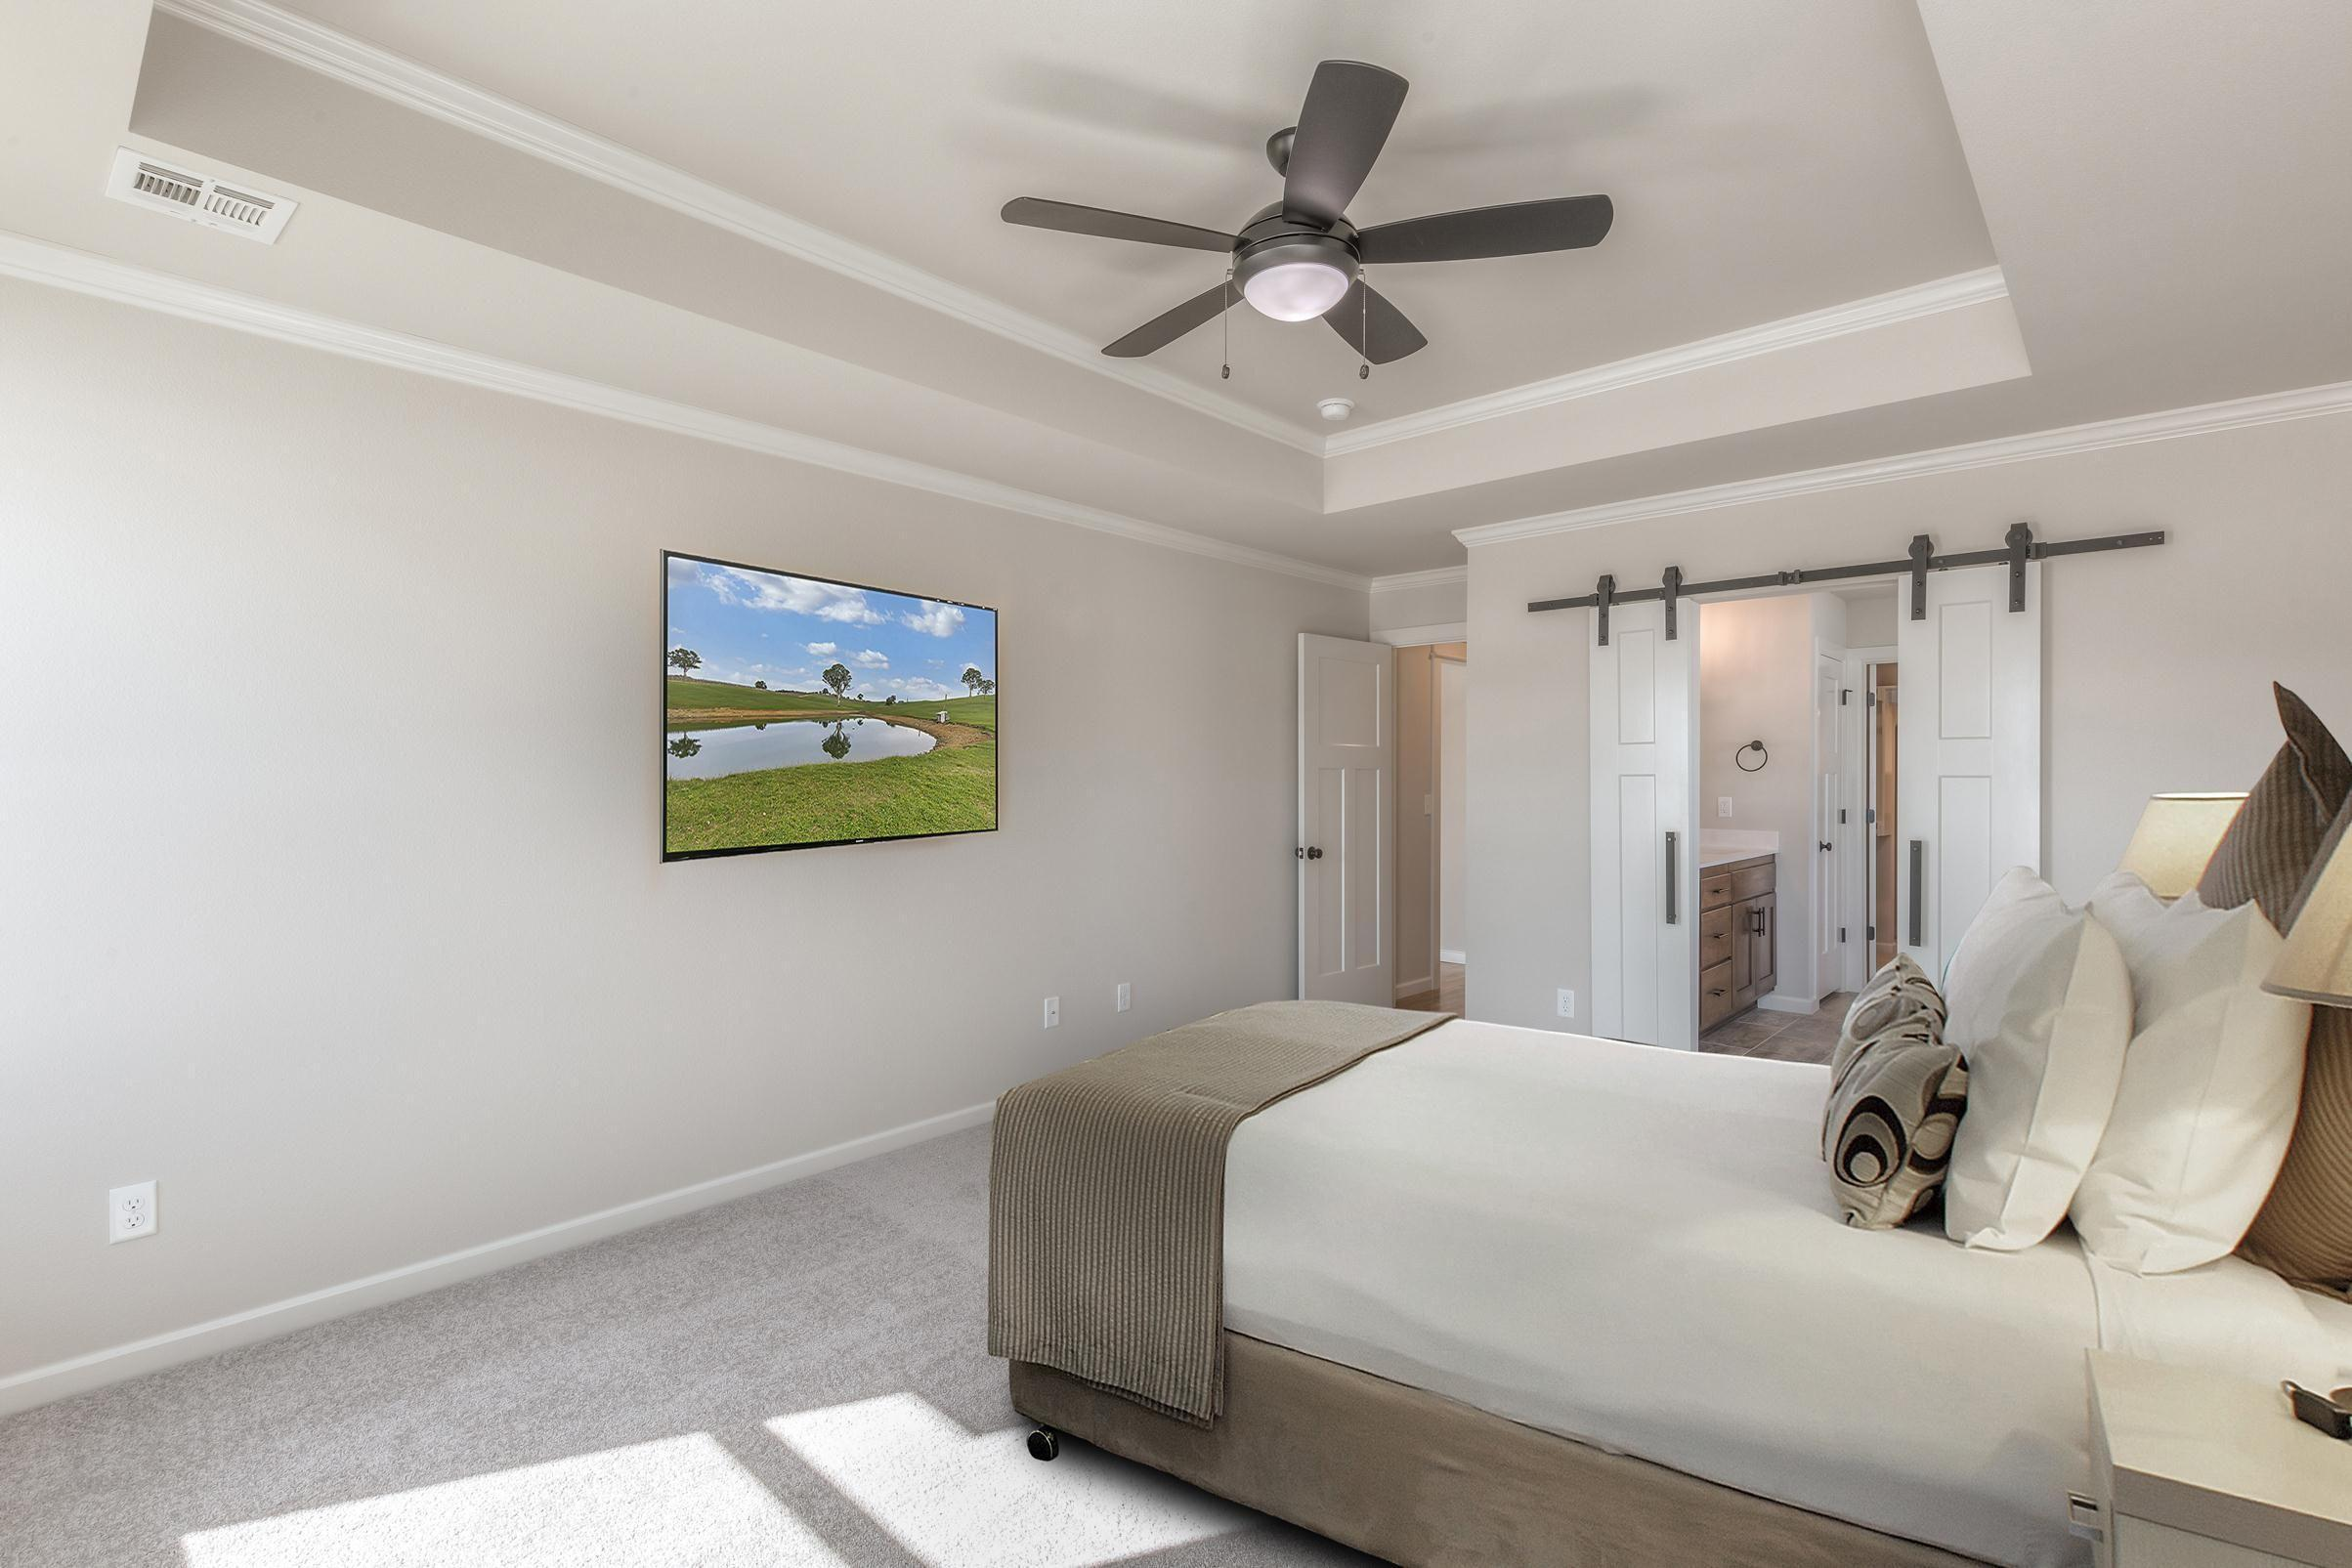 Bedroom featured in the Walker FH By Concept Builders, Inc in Tulsa, OK